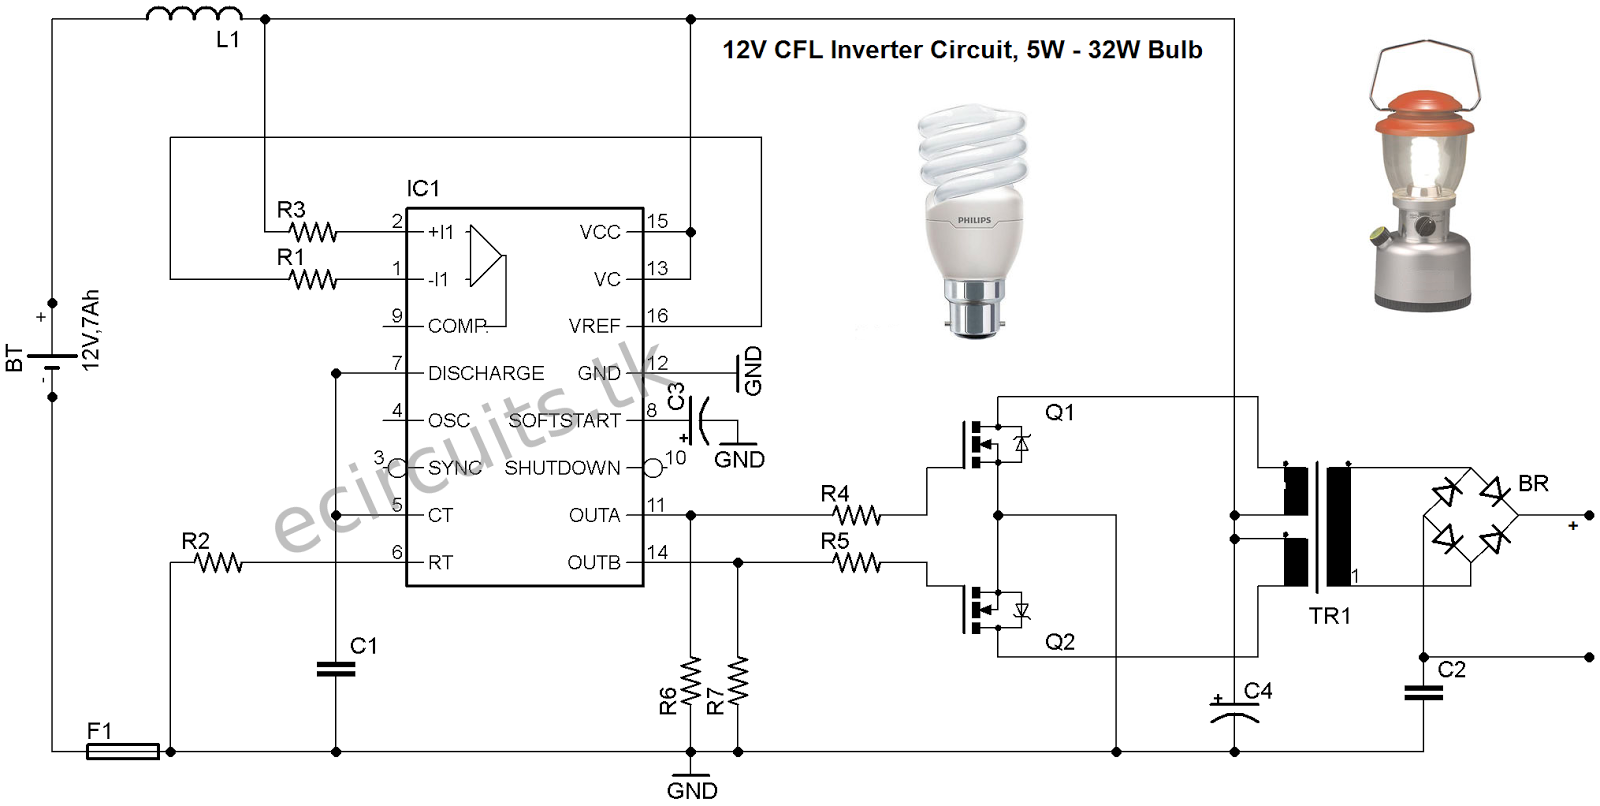 12v cfl emergency light circuit using 3525 ic mini inverter rh simplecircuitsprojects blogspot com emergency light circuit diagram 12v led emergency light circuit diagram